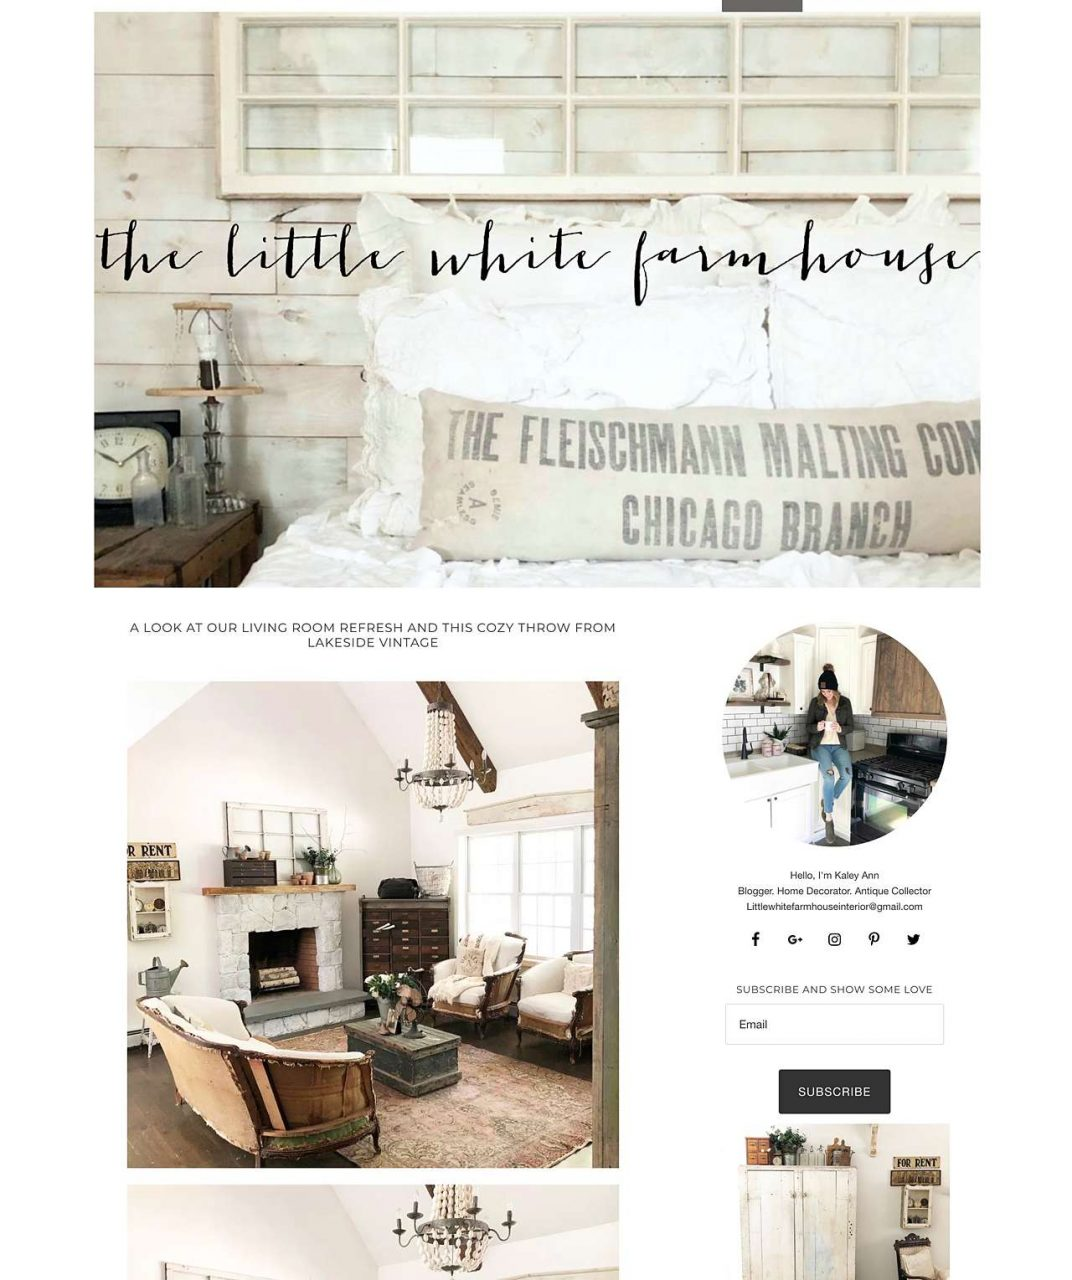 Little White Farmhouse website